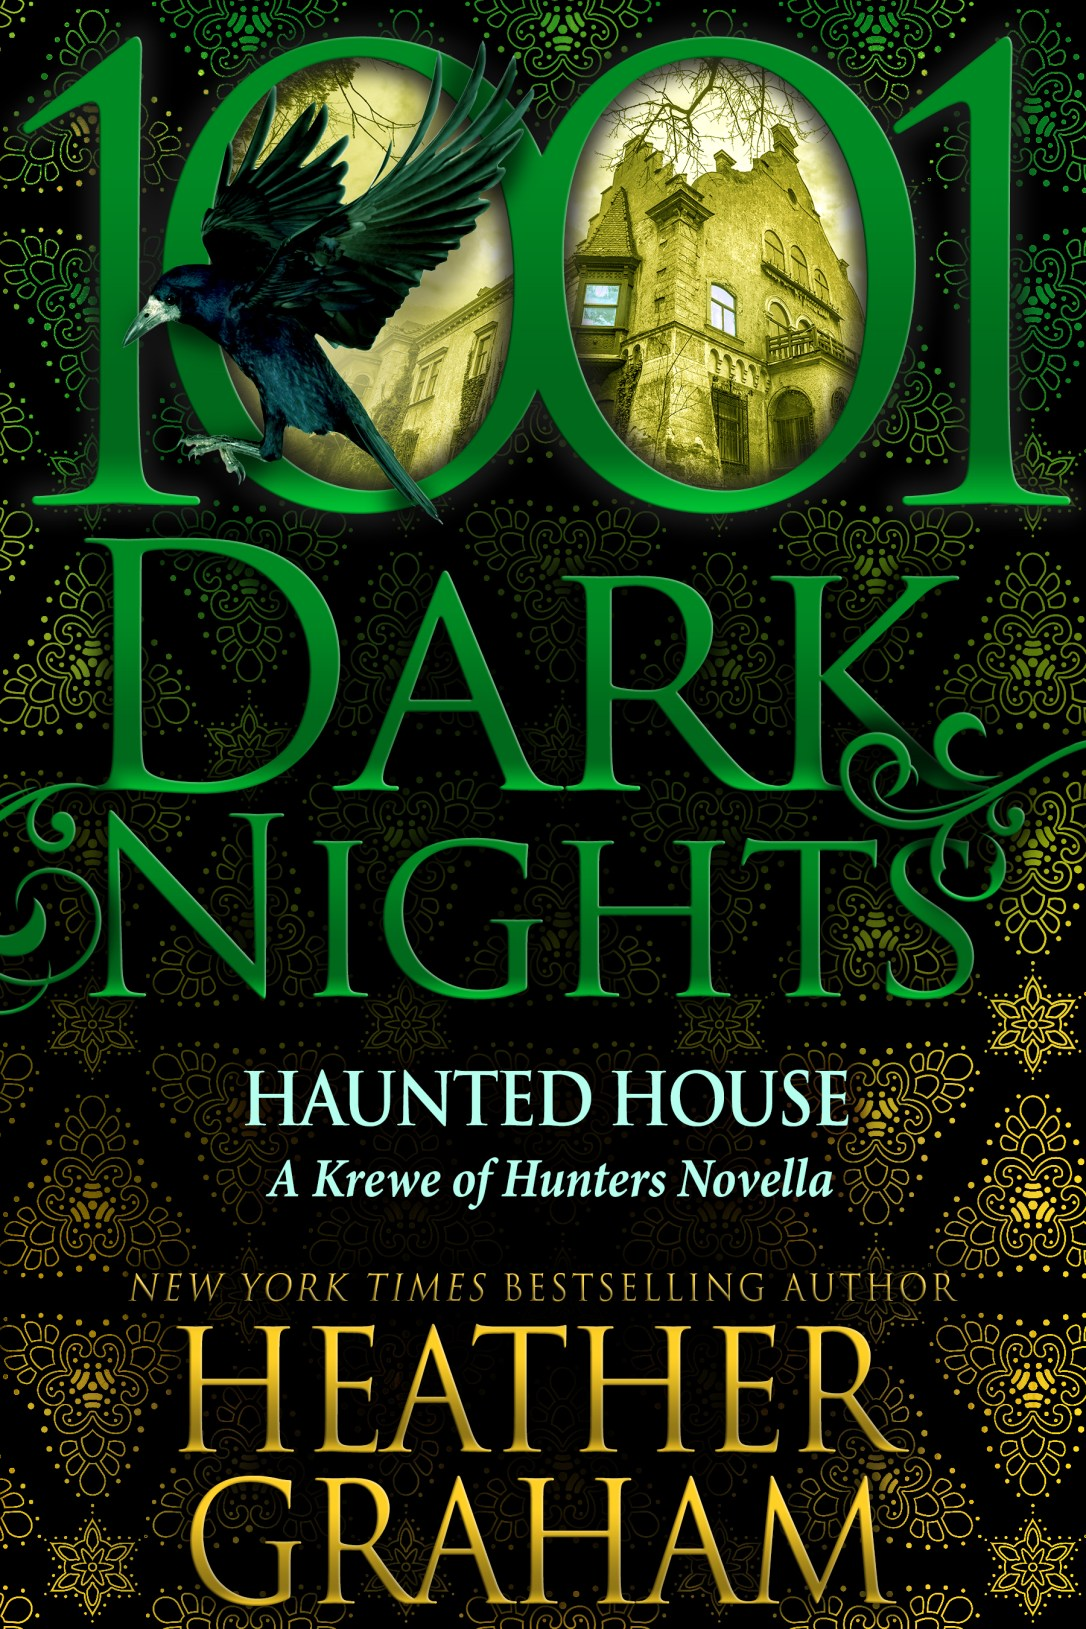 Haunted House by Heather Graham